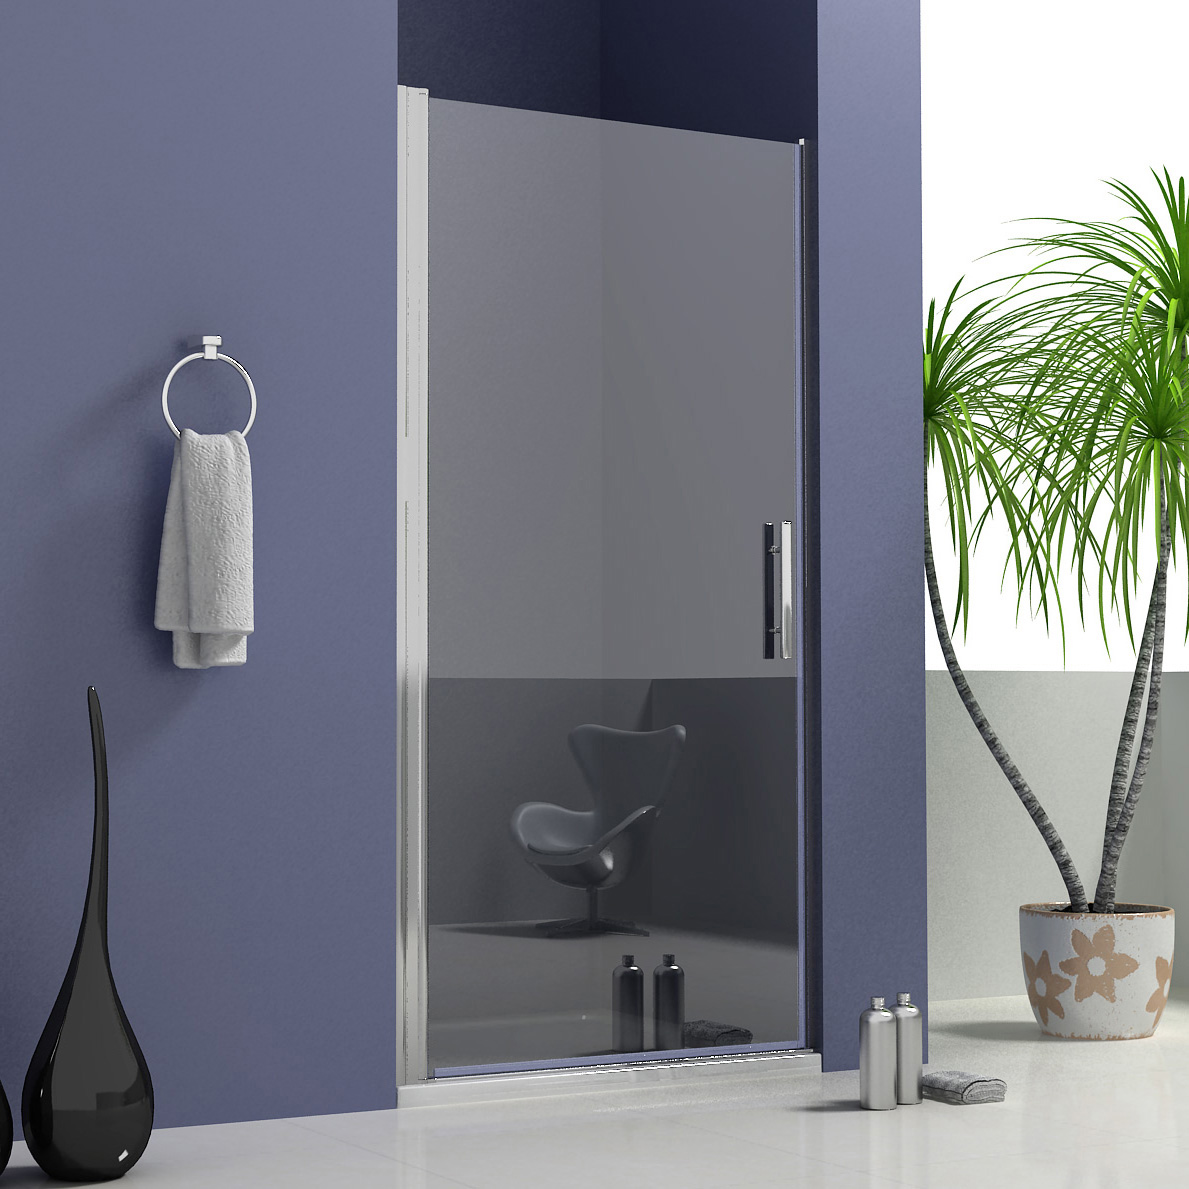 Details About 760 X 900mm Frameless Pivot Shower Enclosure Glass Door Screen Stone Tray Waste